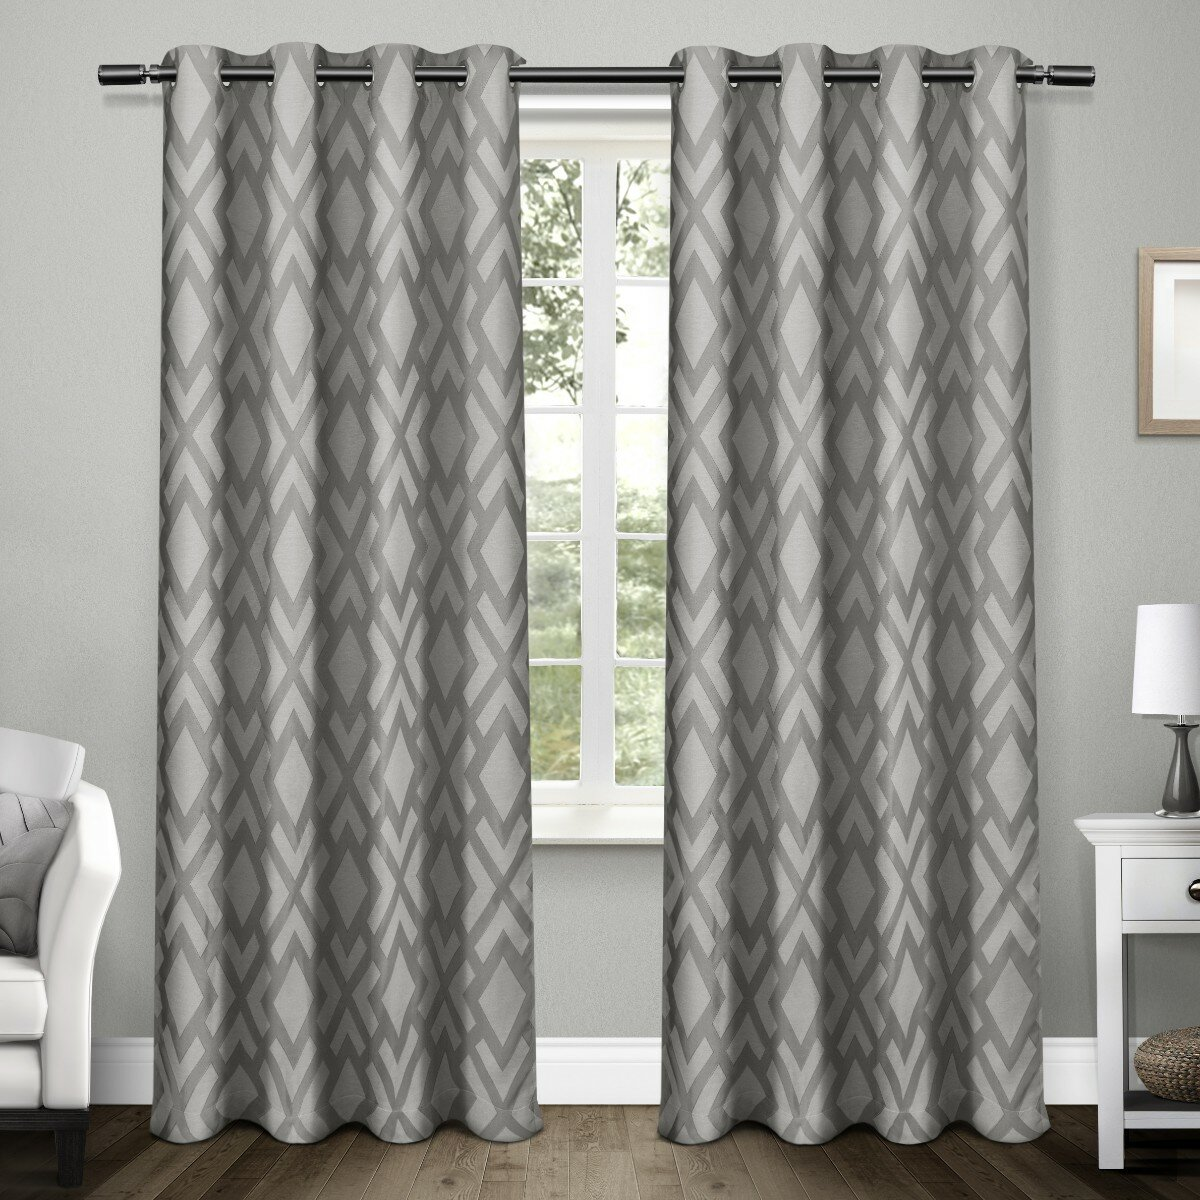 Thermal Blackout Bedroom Curtains